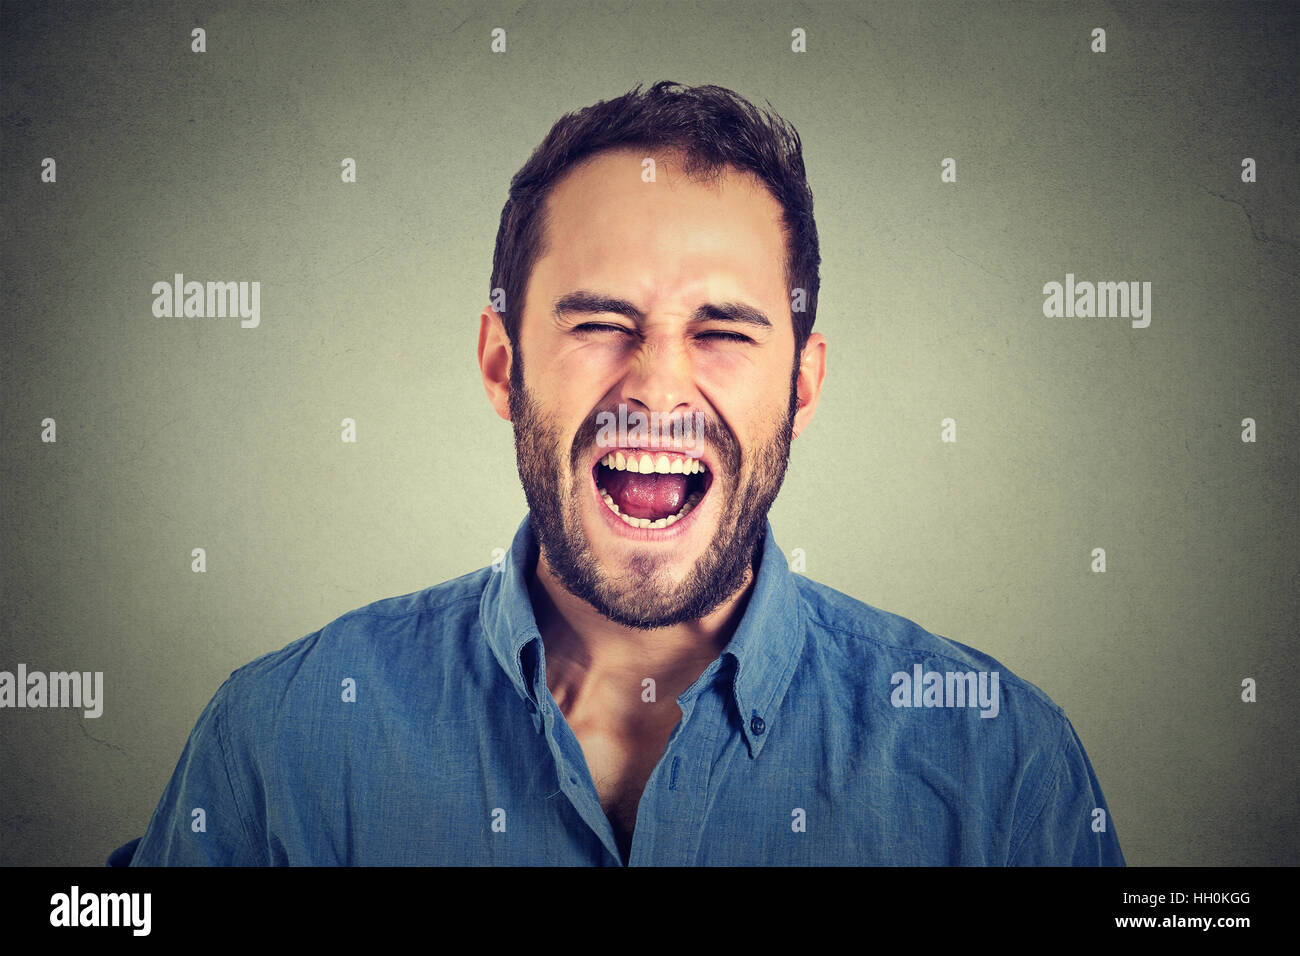 portrait of young angry man screaming - Stock Image